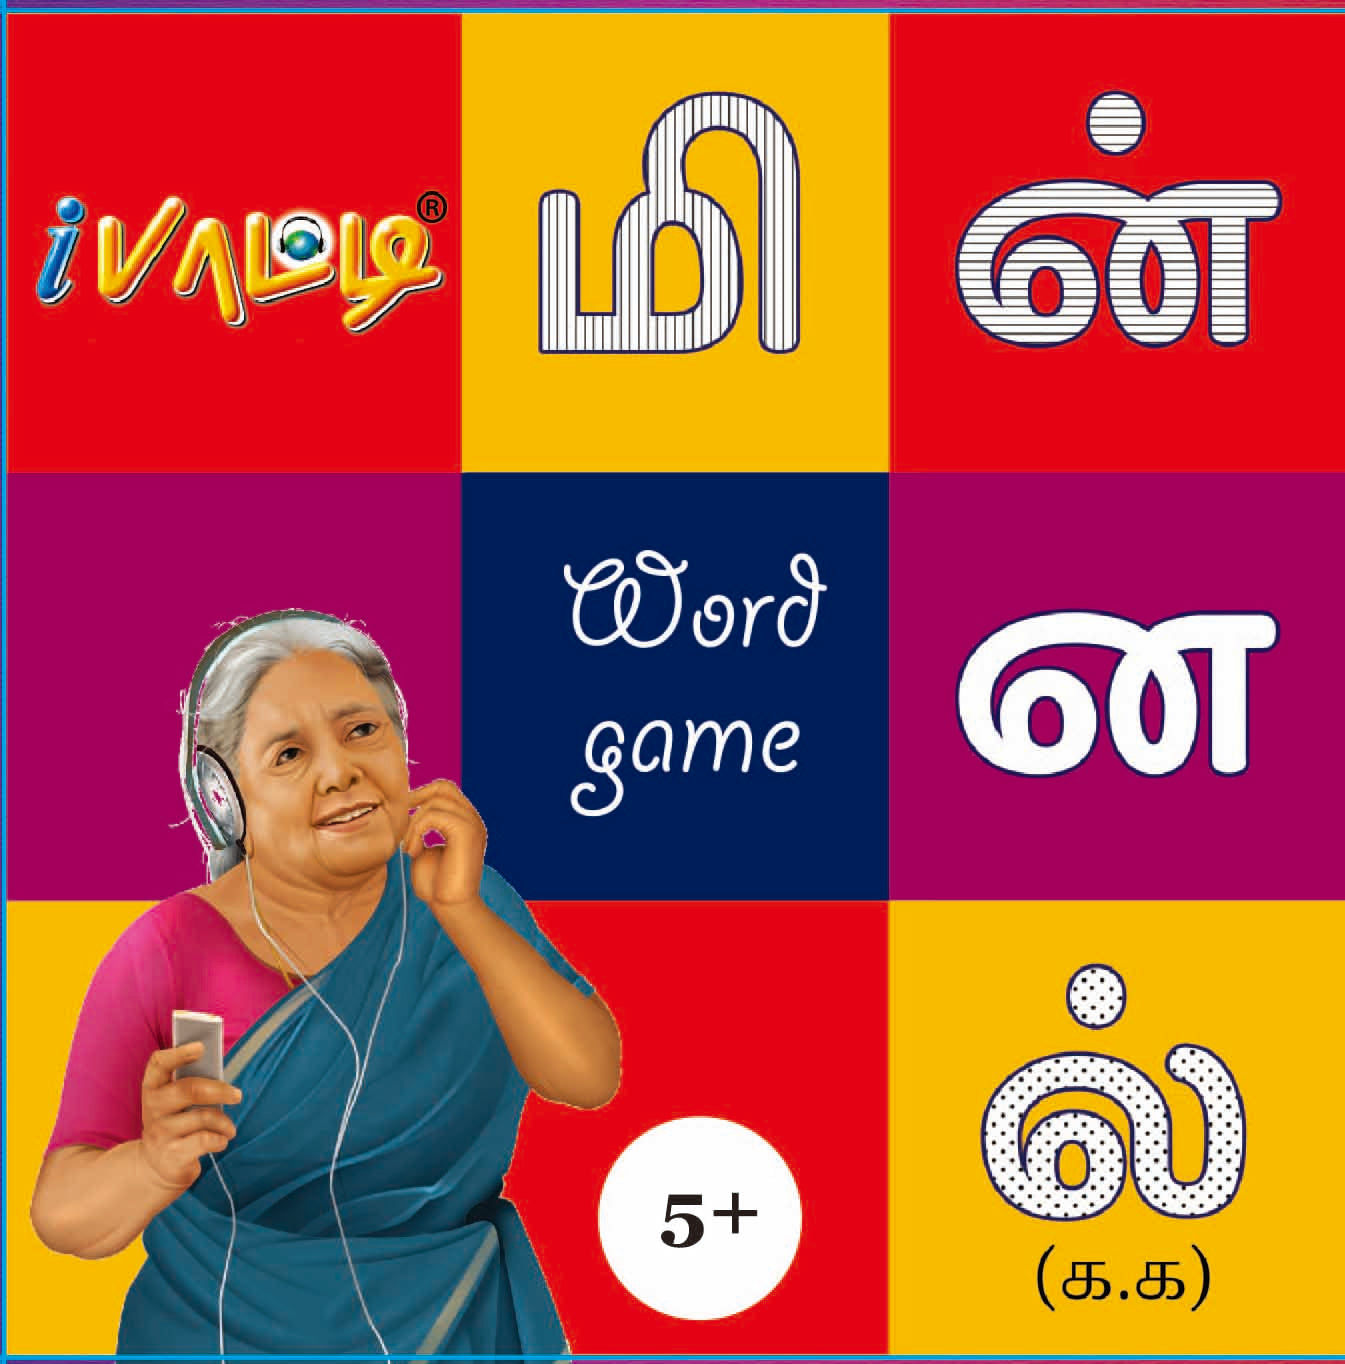 மின்னல் | Tamil Word Game - ipaattiusa